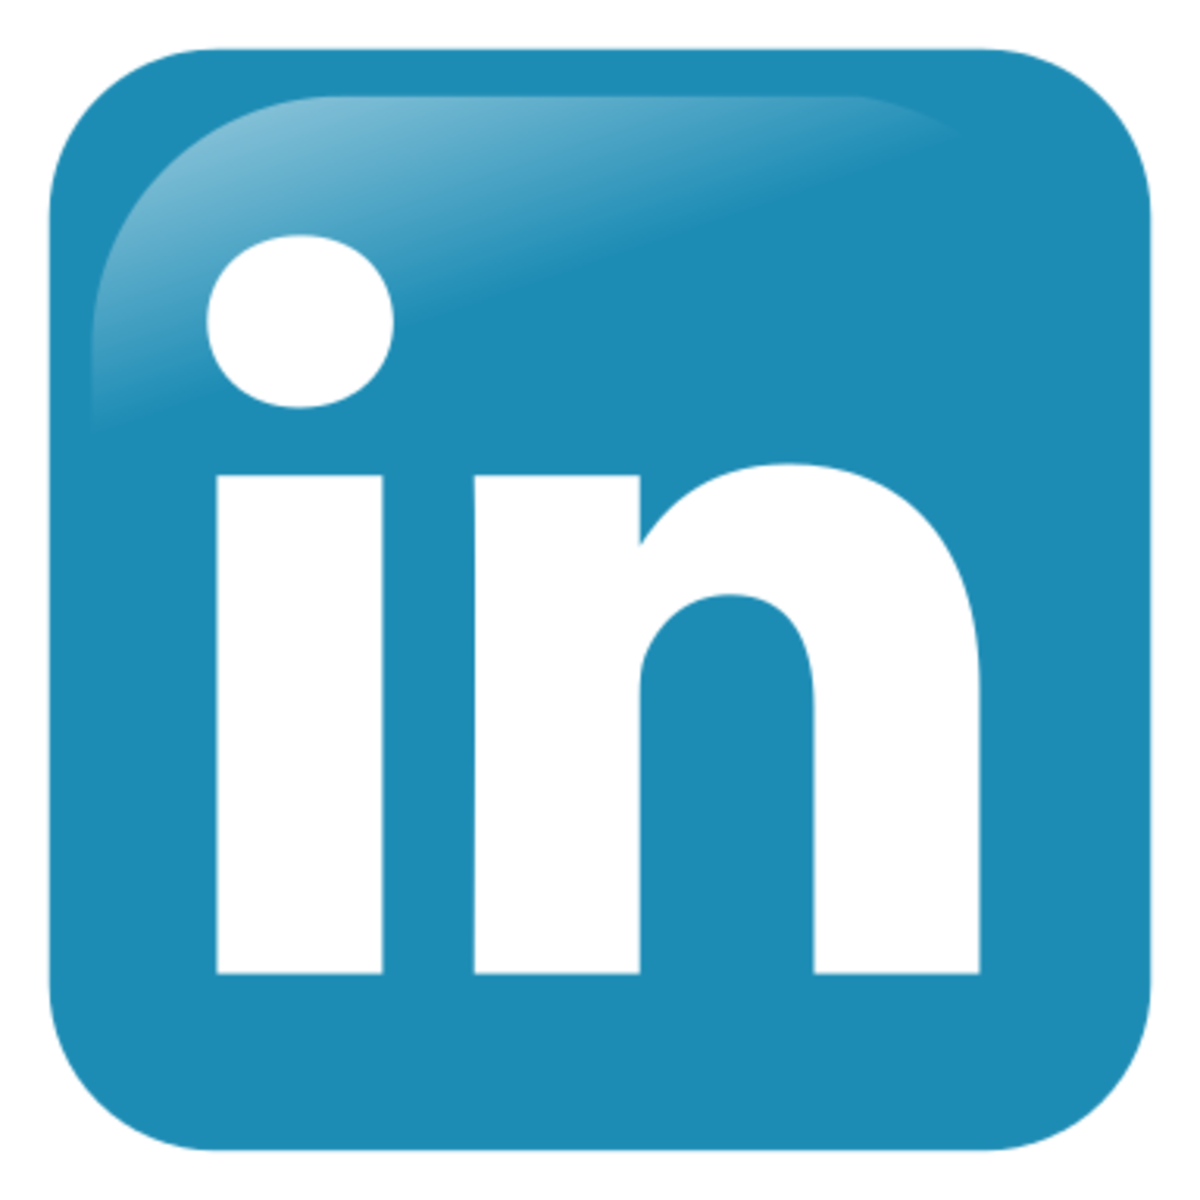 Linkedin_icon.svg